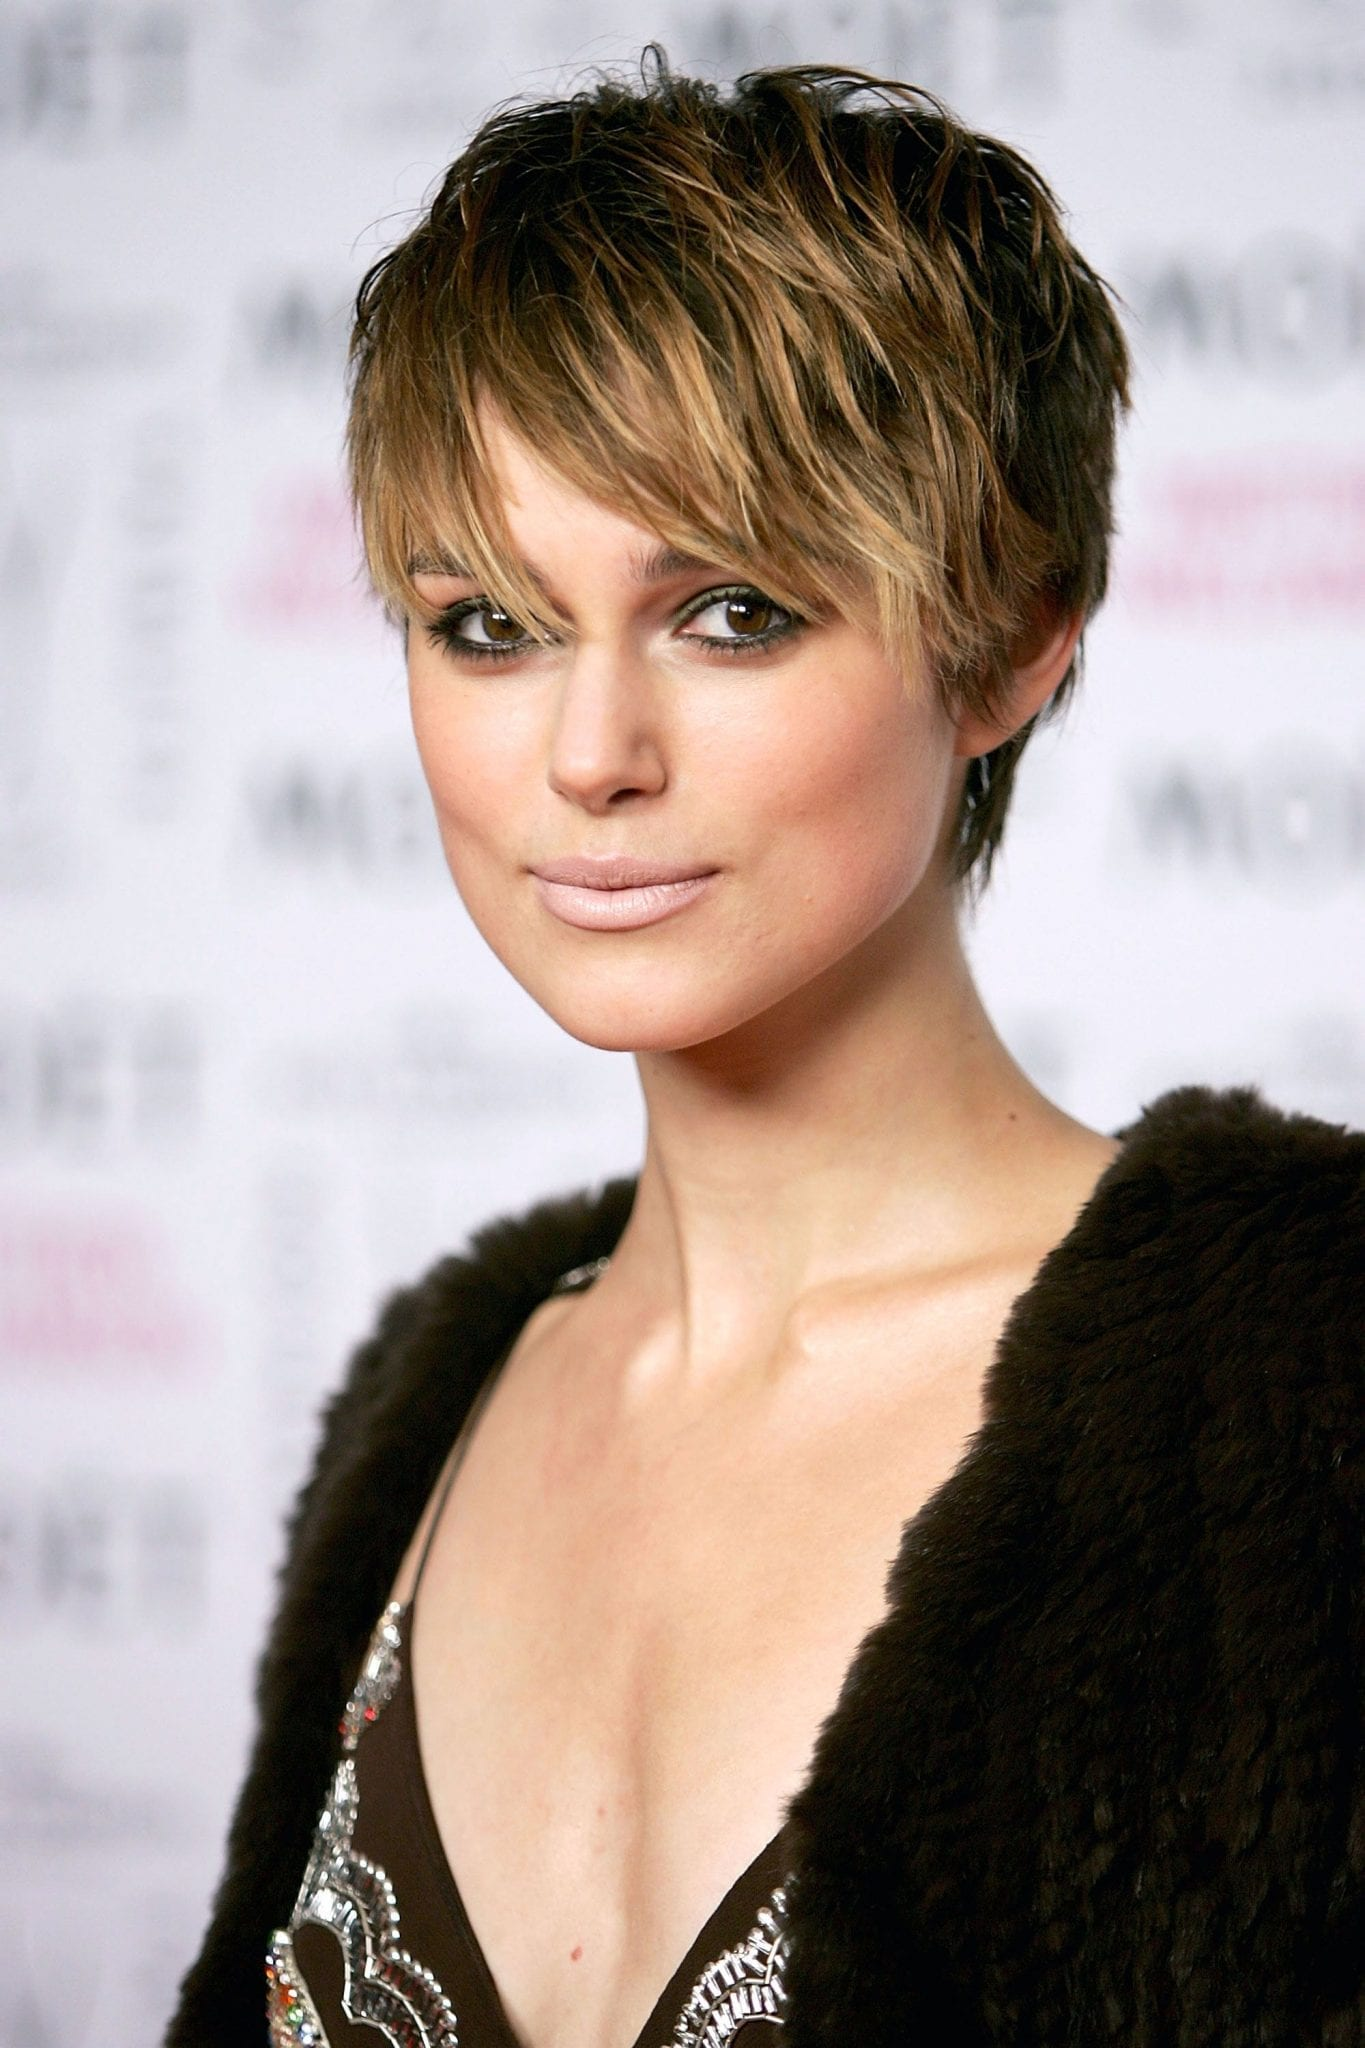 pixie cut - tendenze hair style 2019